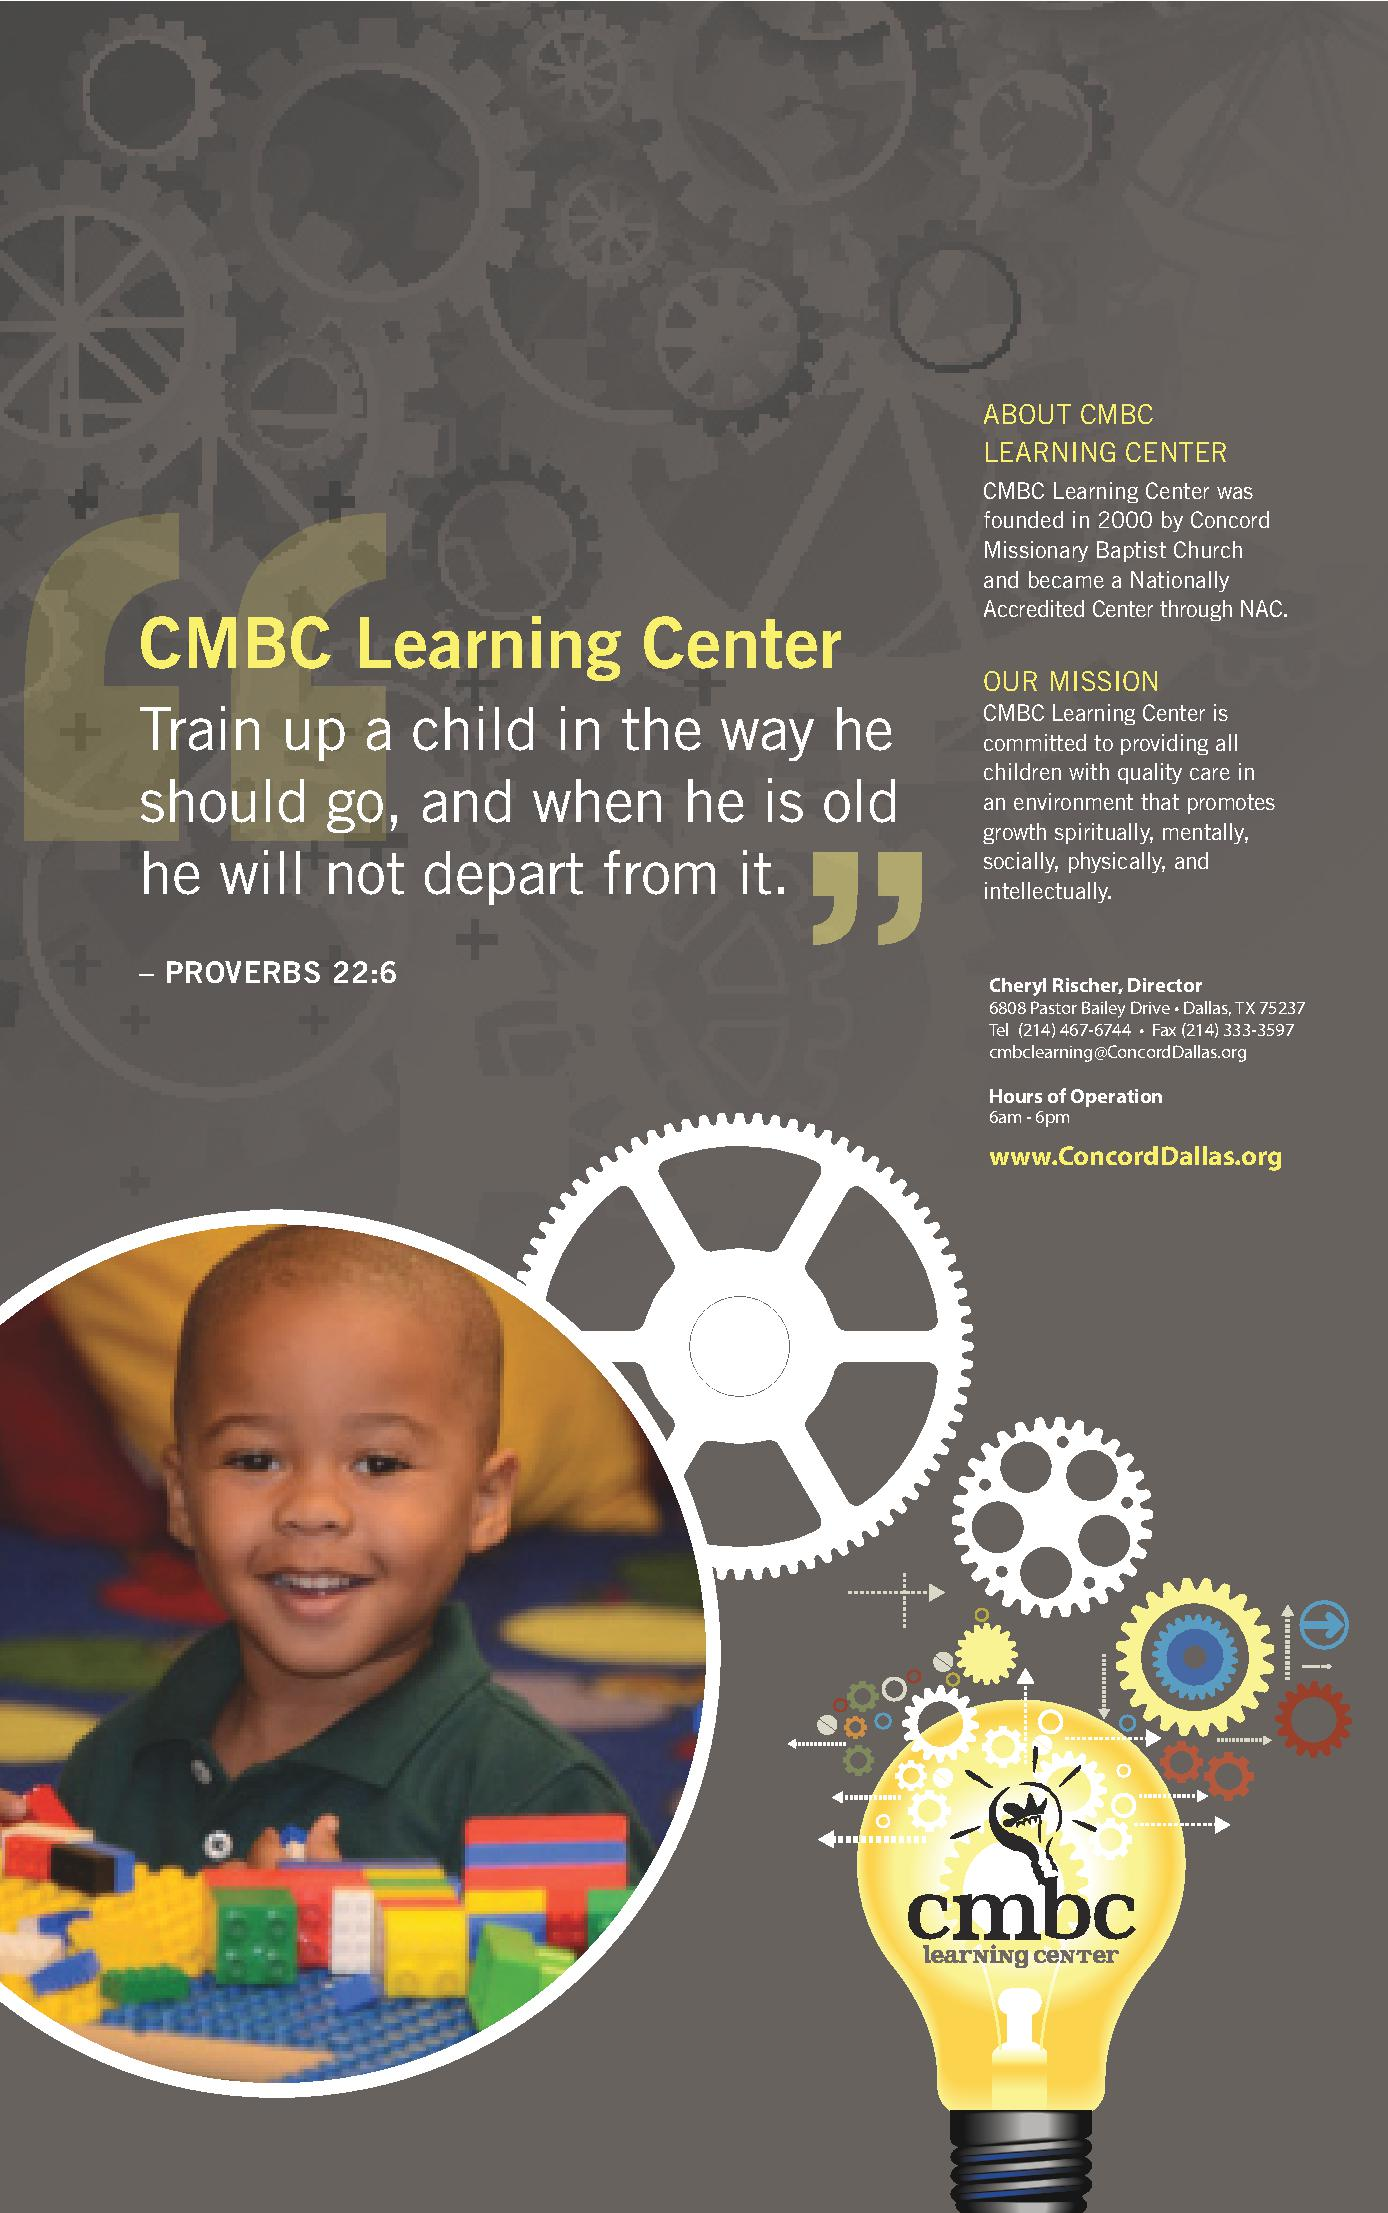 CMBC Learning Center